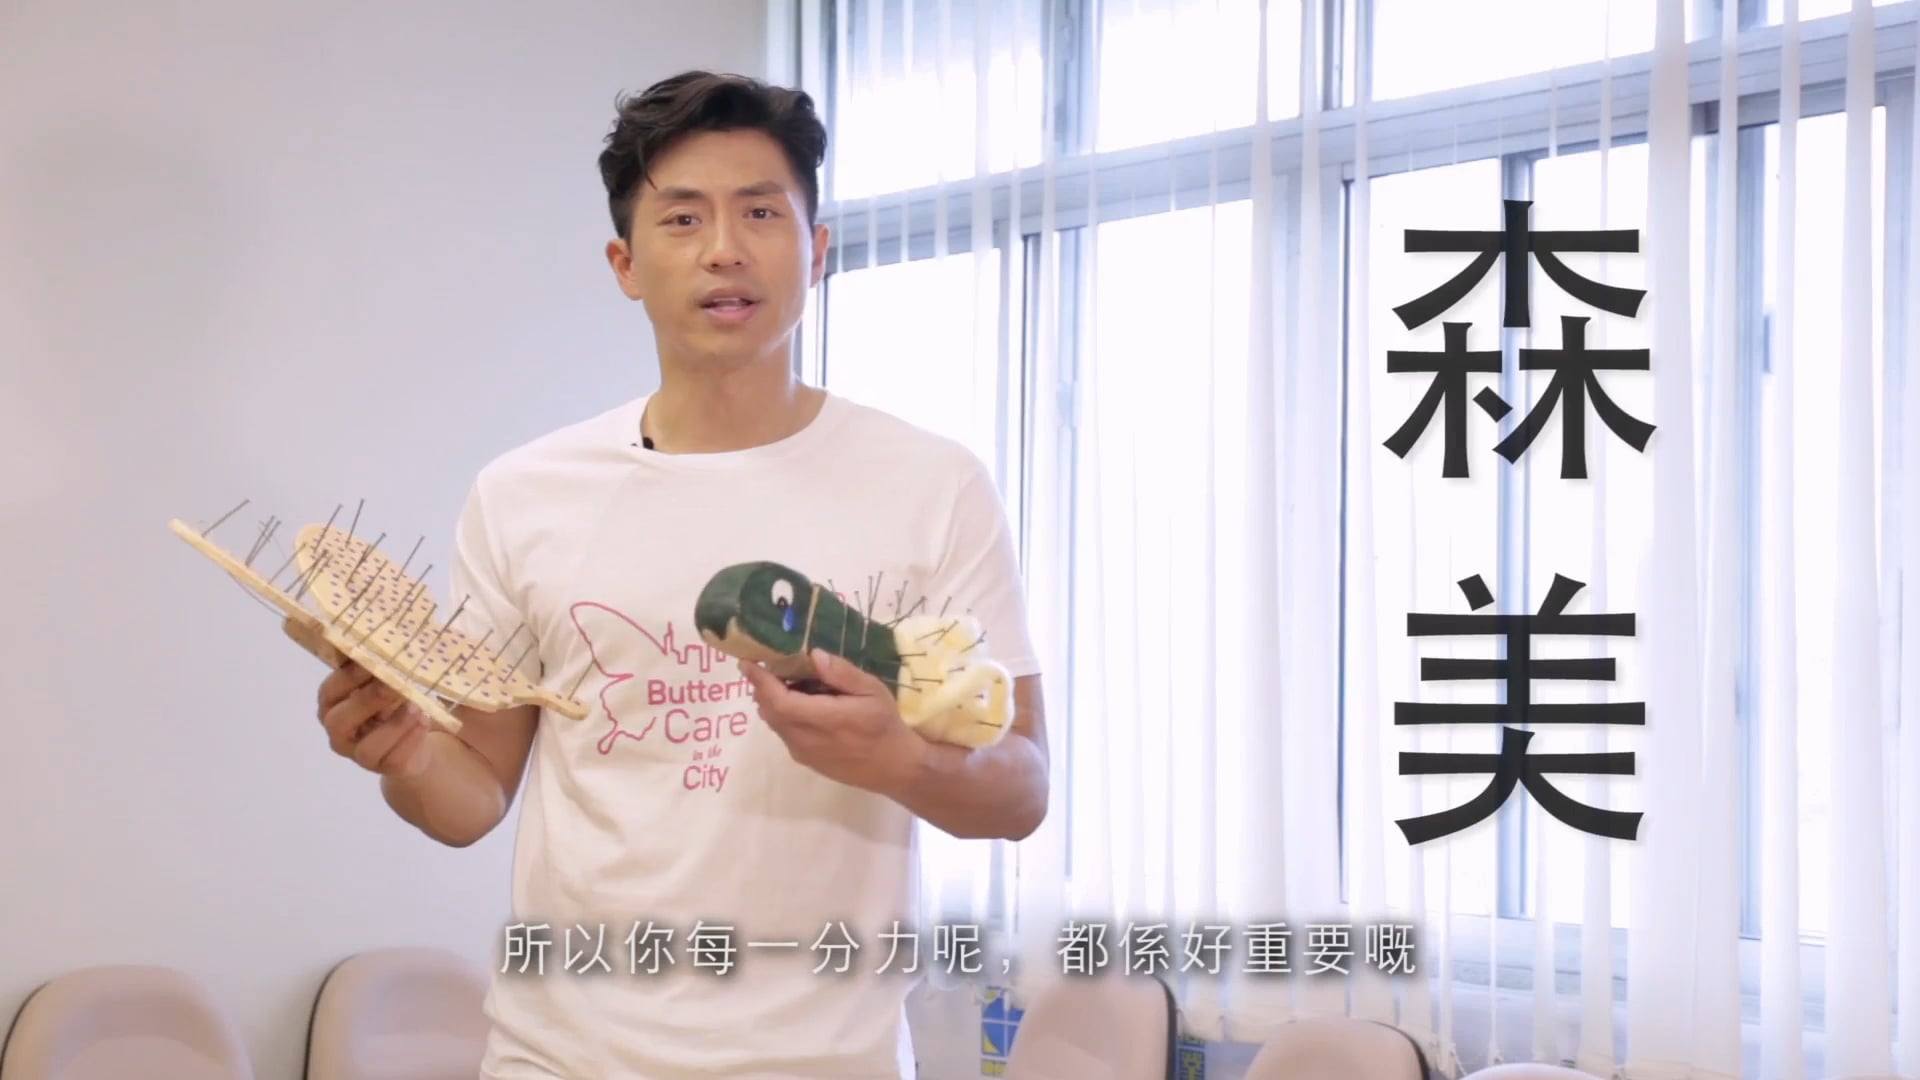 Green Power Butterfly Care Promotional Video